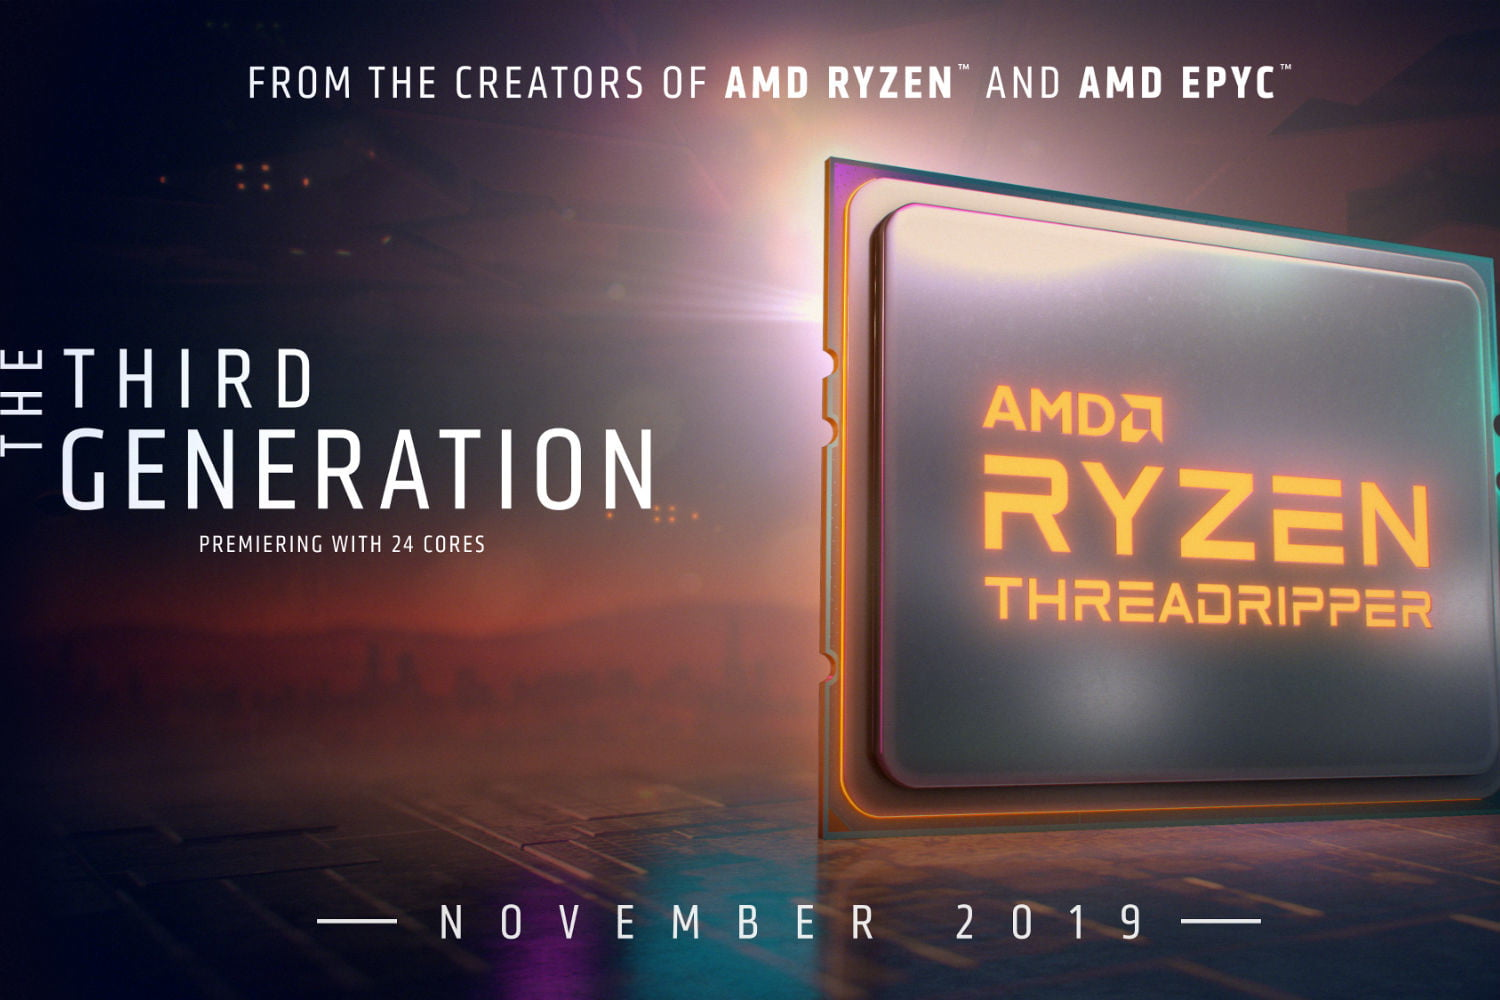 AMD's Threadripper 3000 will launch in November. Here's the first official image